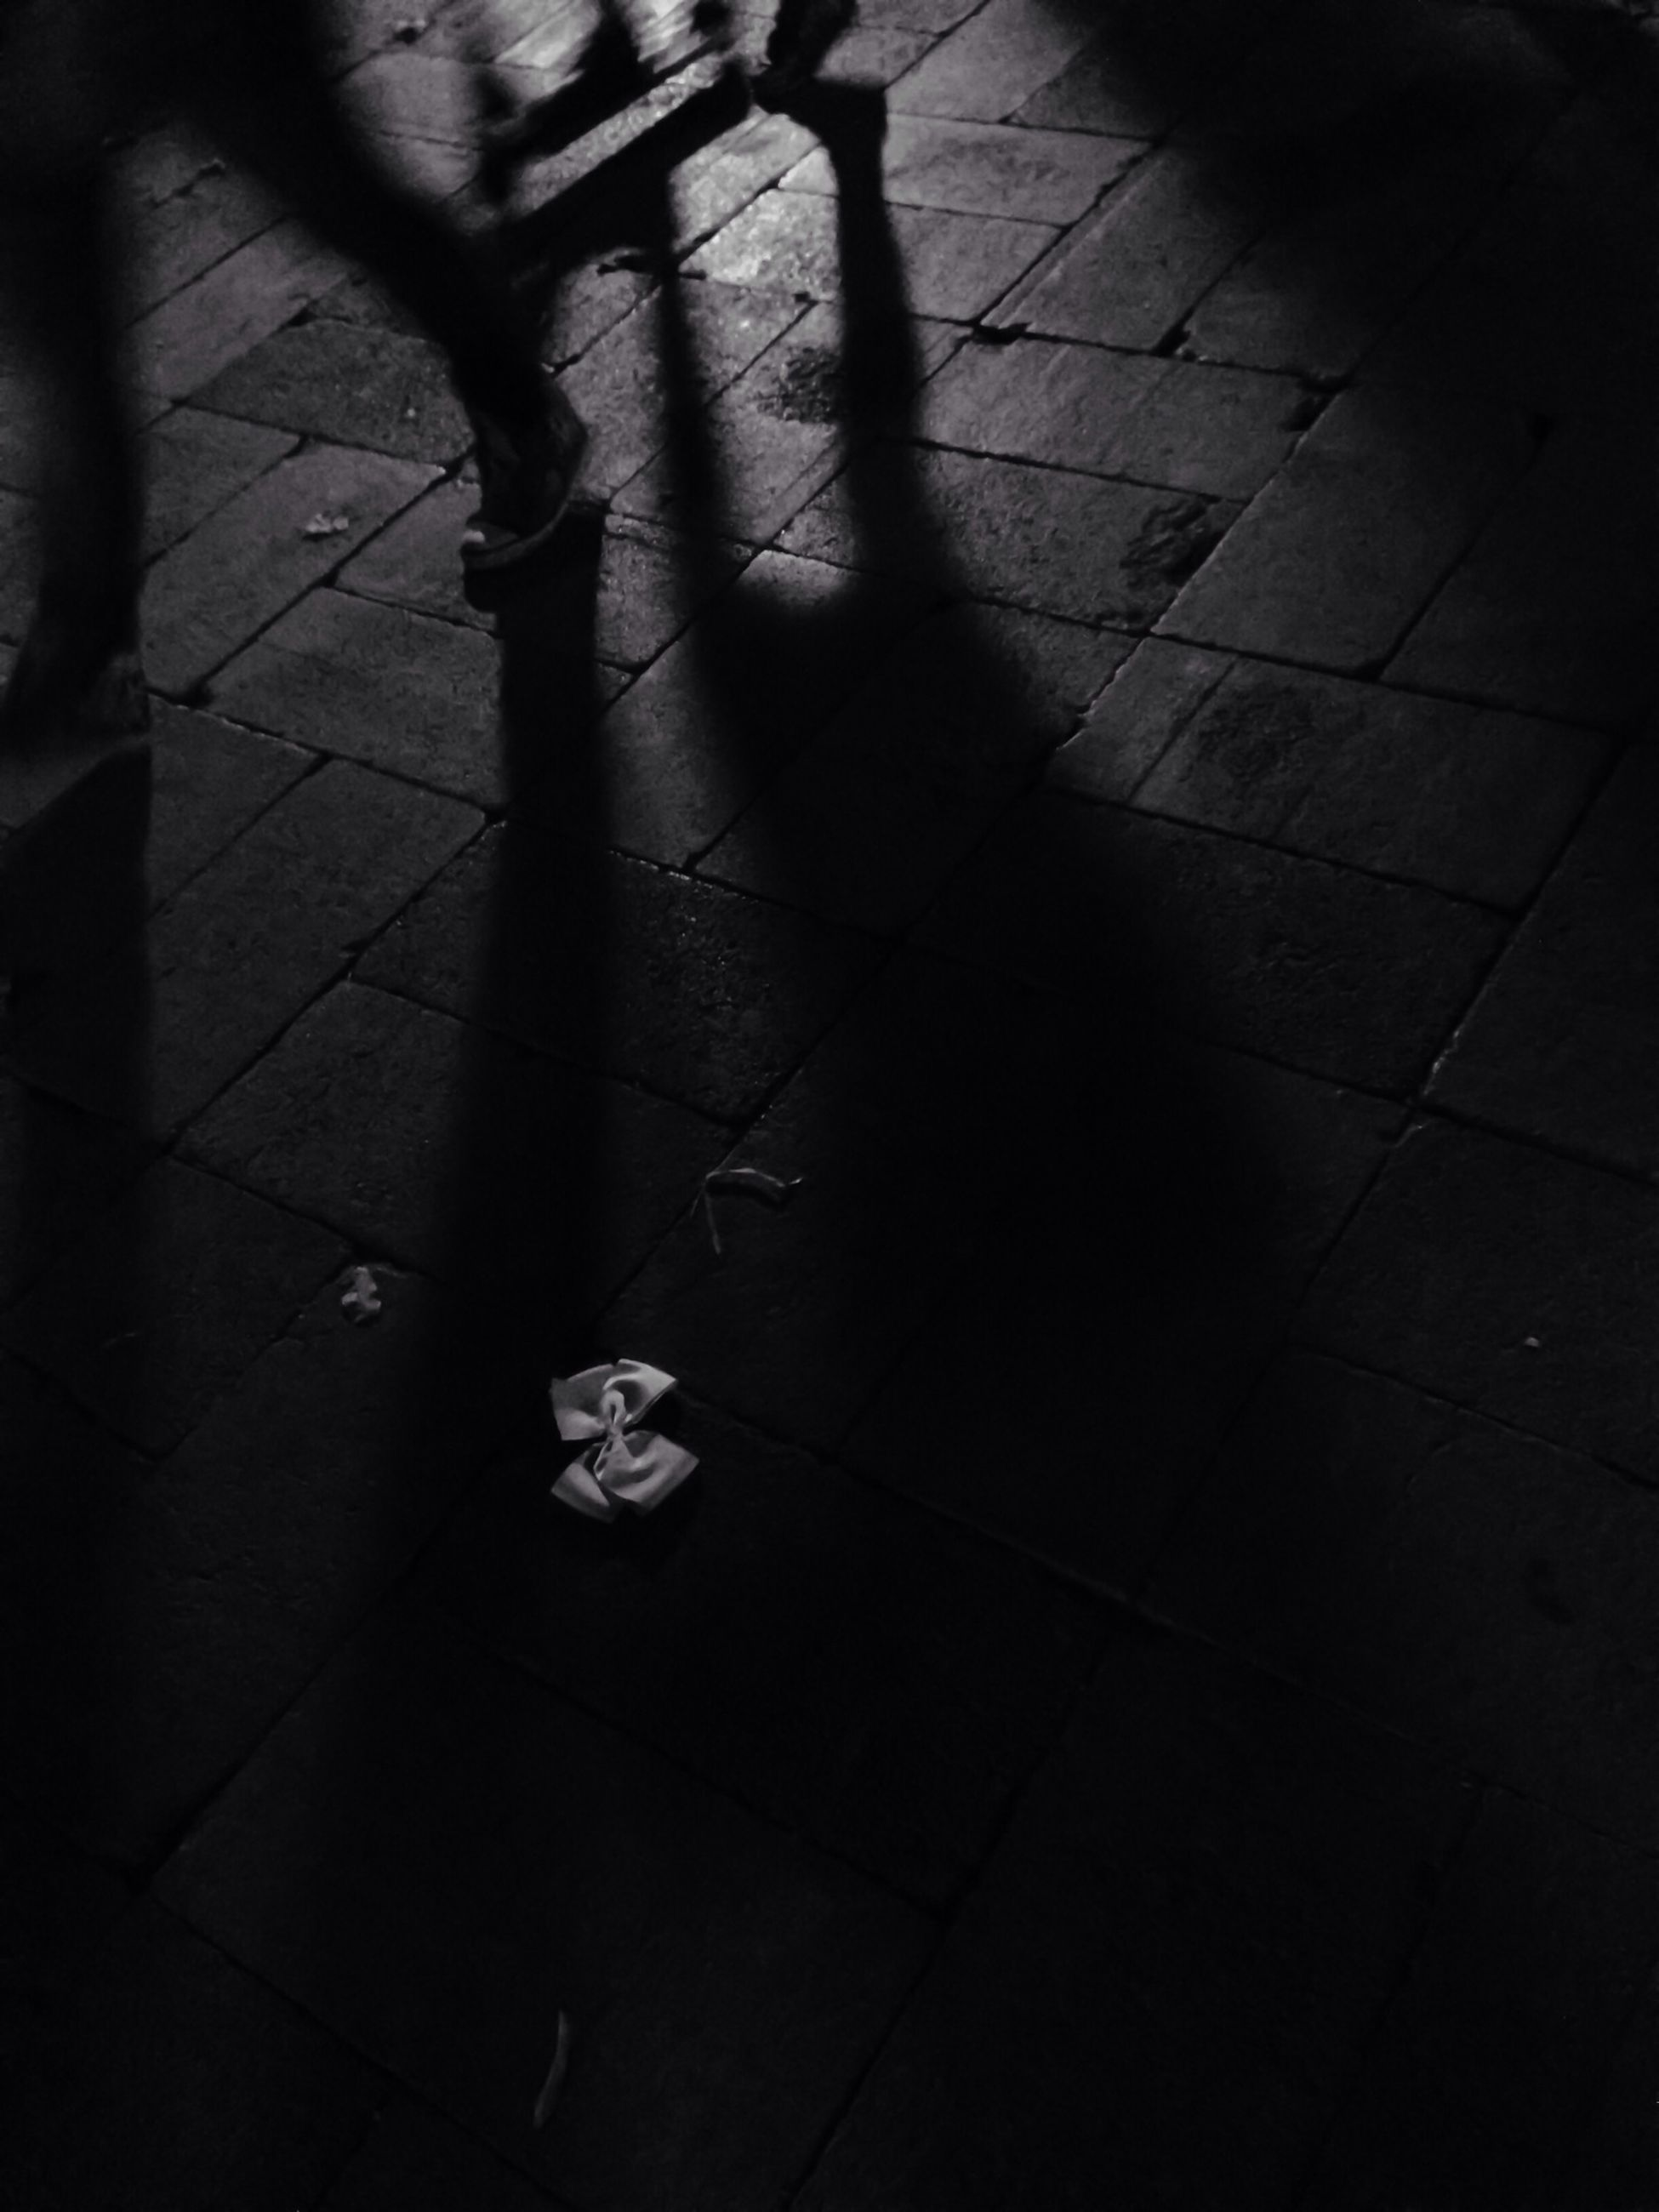 shadow, low section, high angle view, person, focus on shadow, sunlight, lifestyles, walking, street, tiled floor, unrecognizable person, men, leisure activity, standing, silhouette, sidewalk, footpath